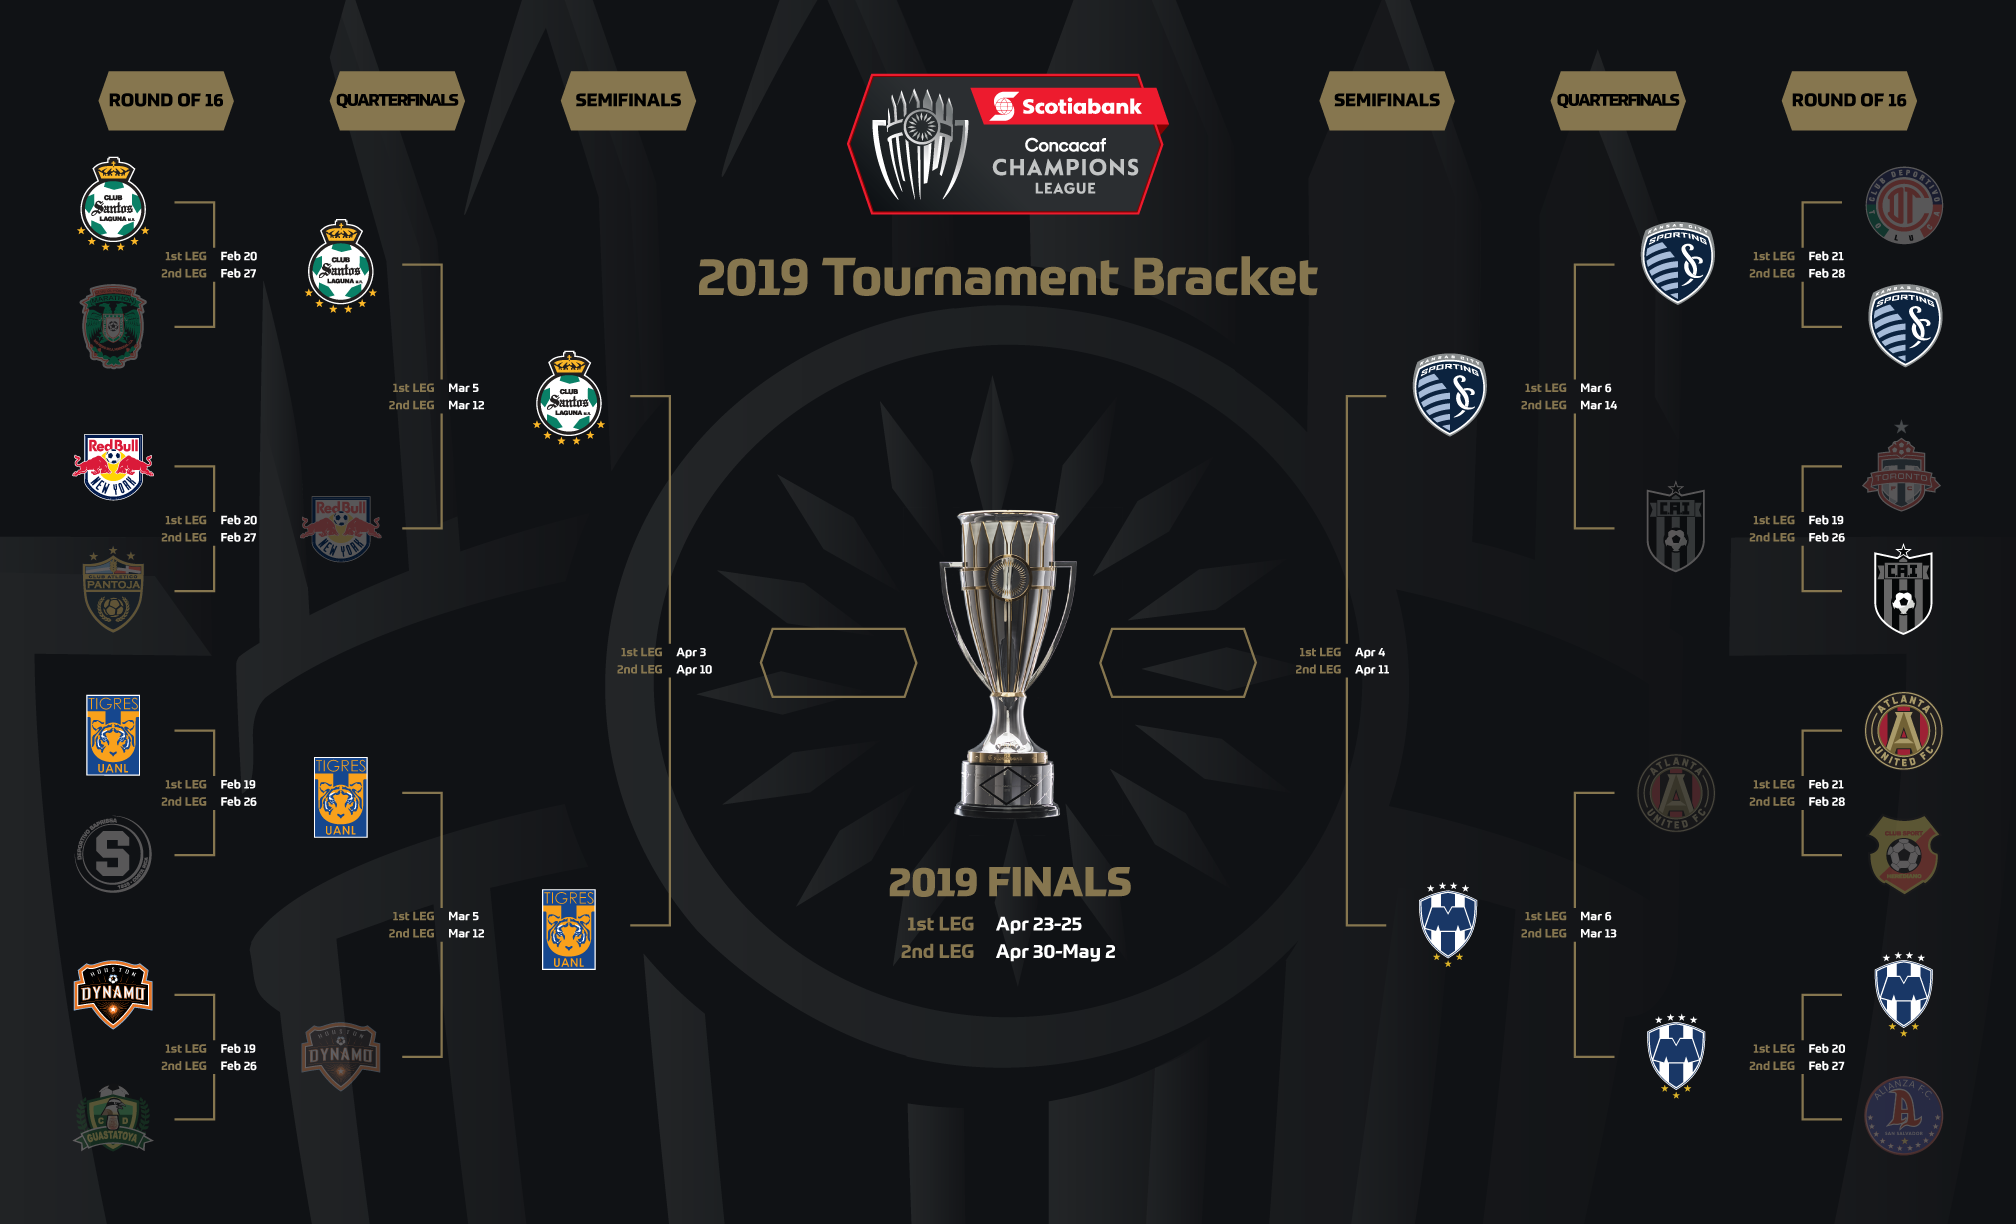 Information on the 2019 Concacaf Champions League Semifinals